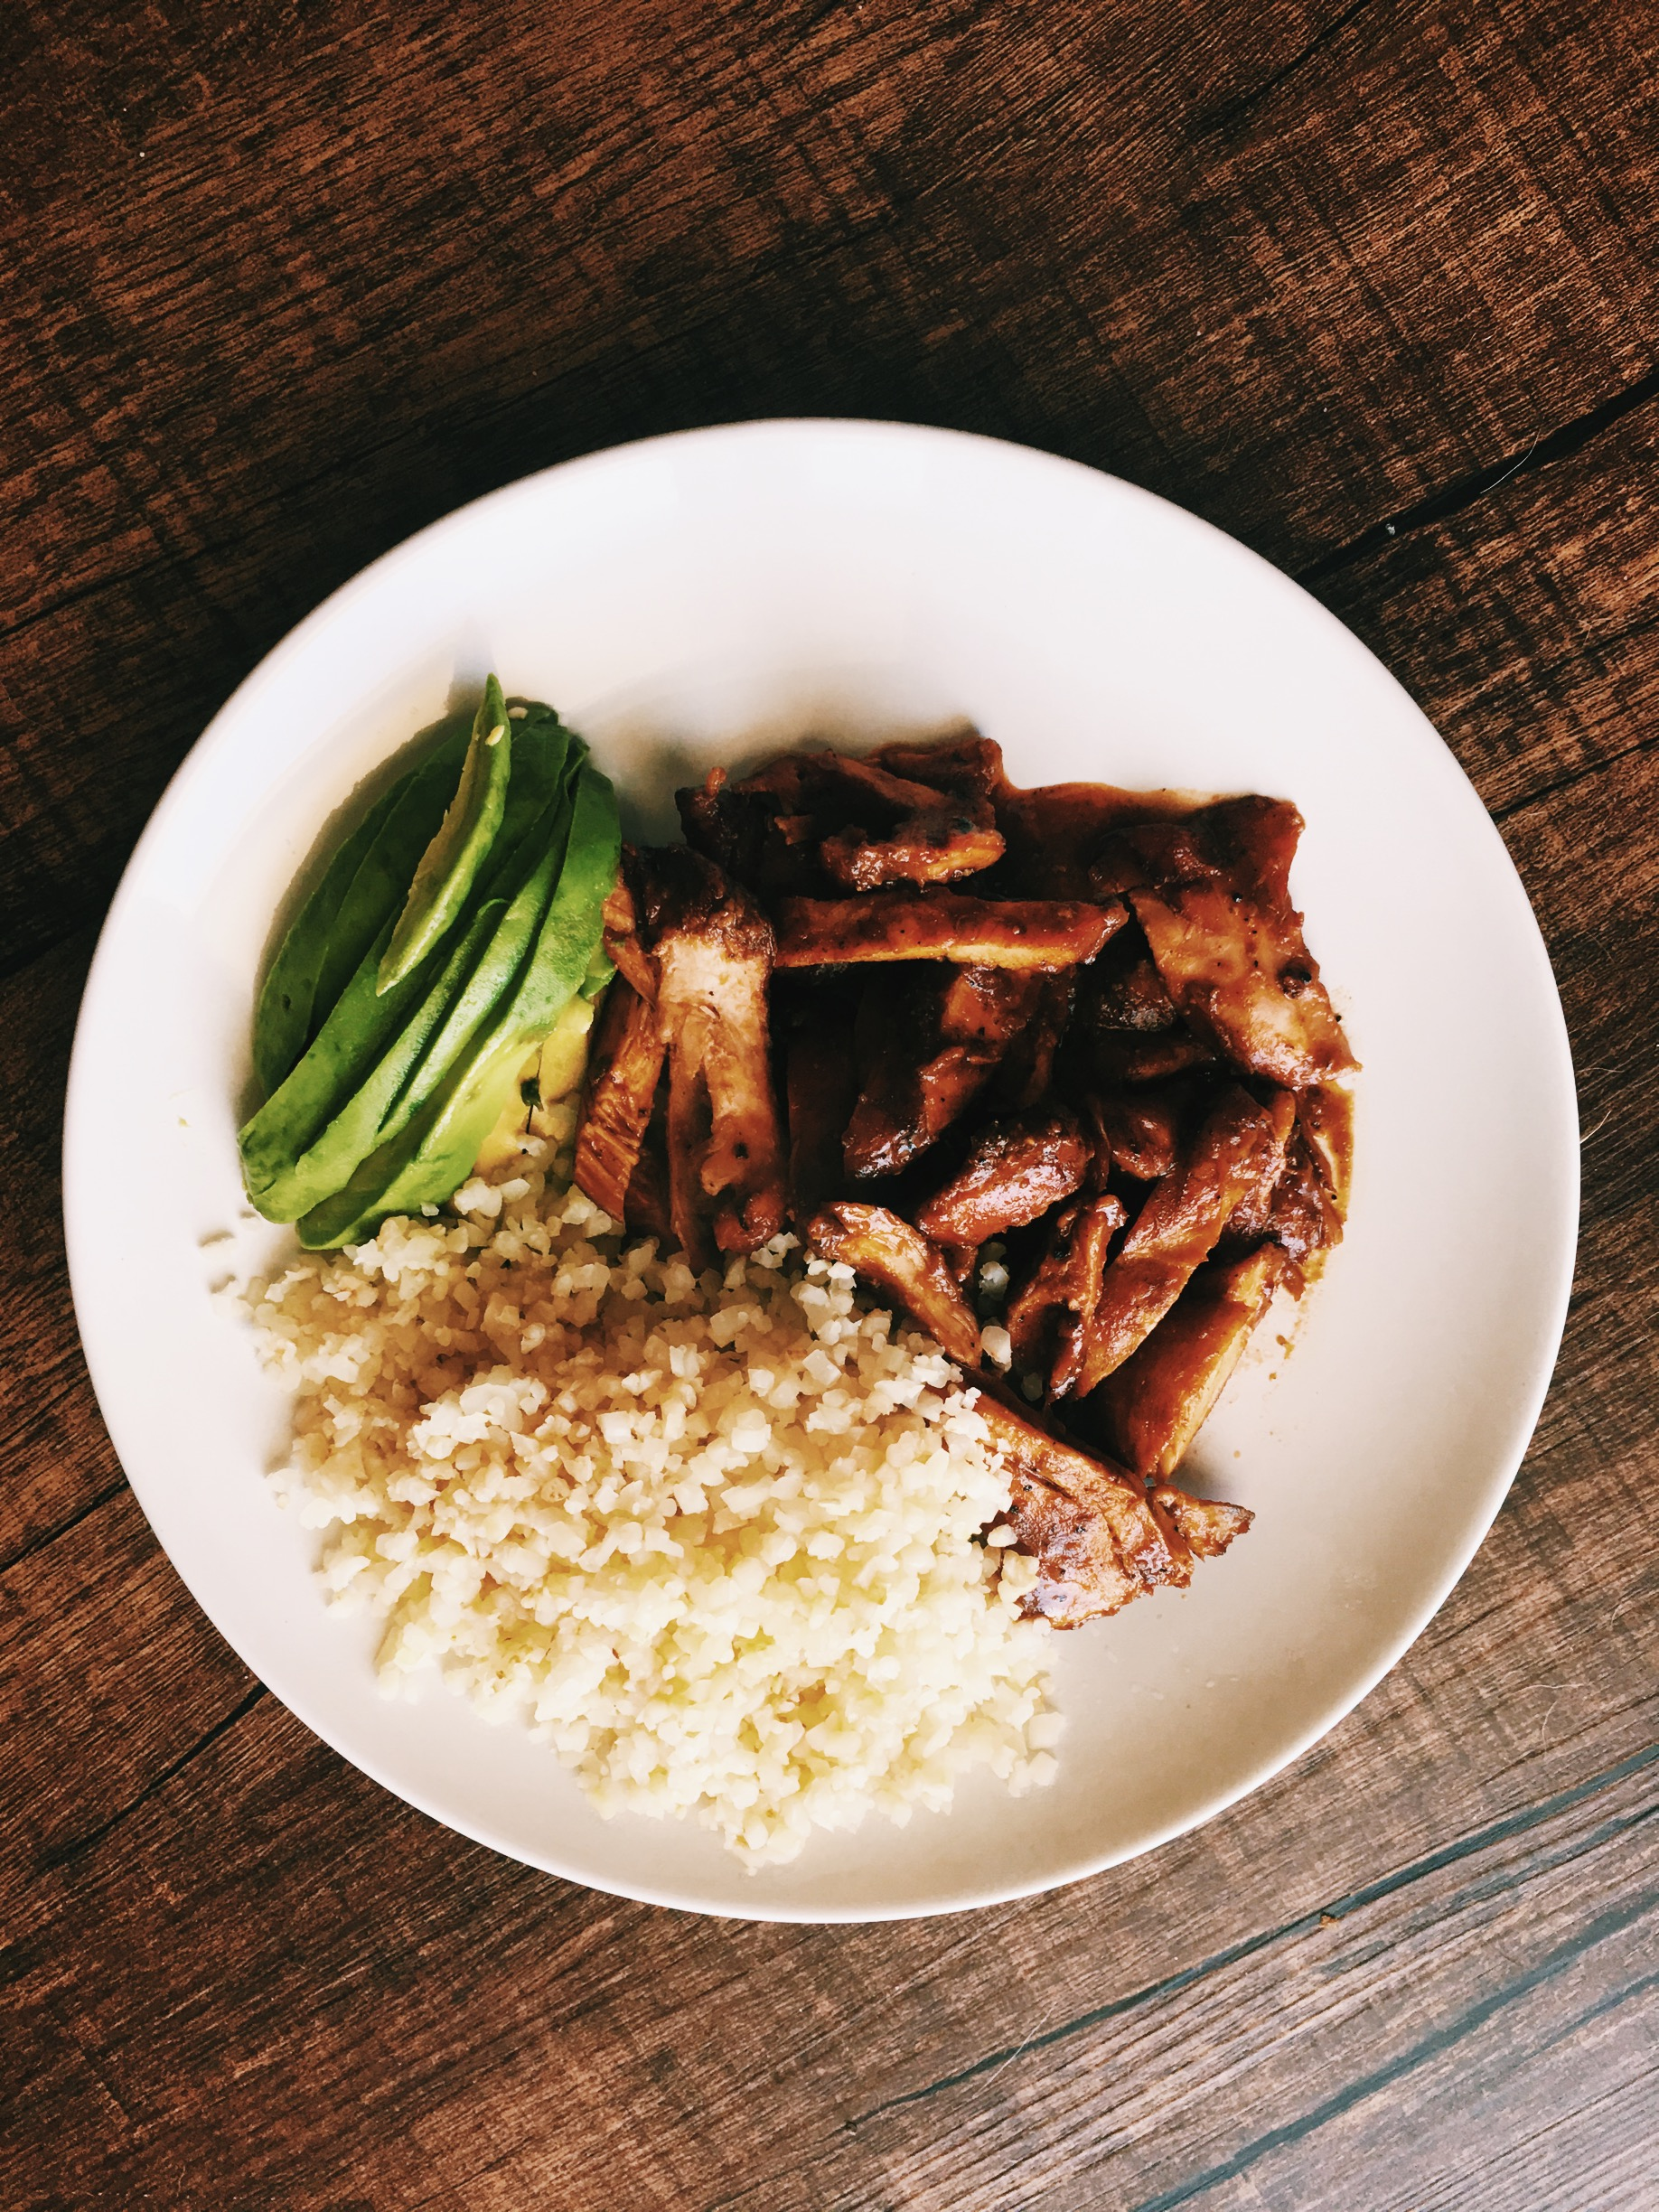 Tessamae bbq chicken (chicken was smoked on our smoker not sure if that's approved as a disclaimer) cauliflower rice and avacado.